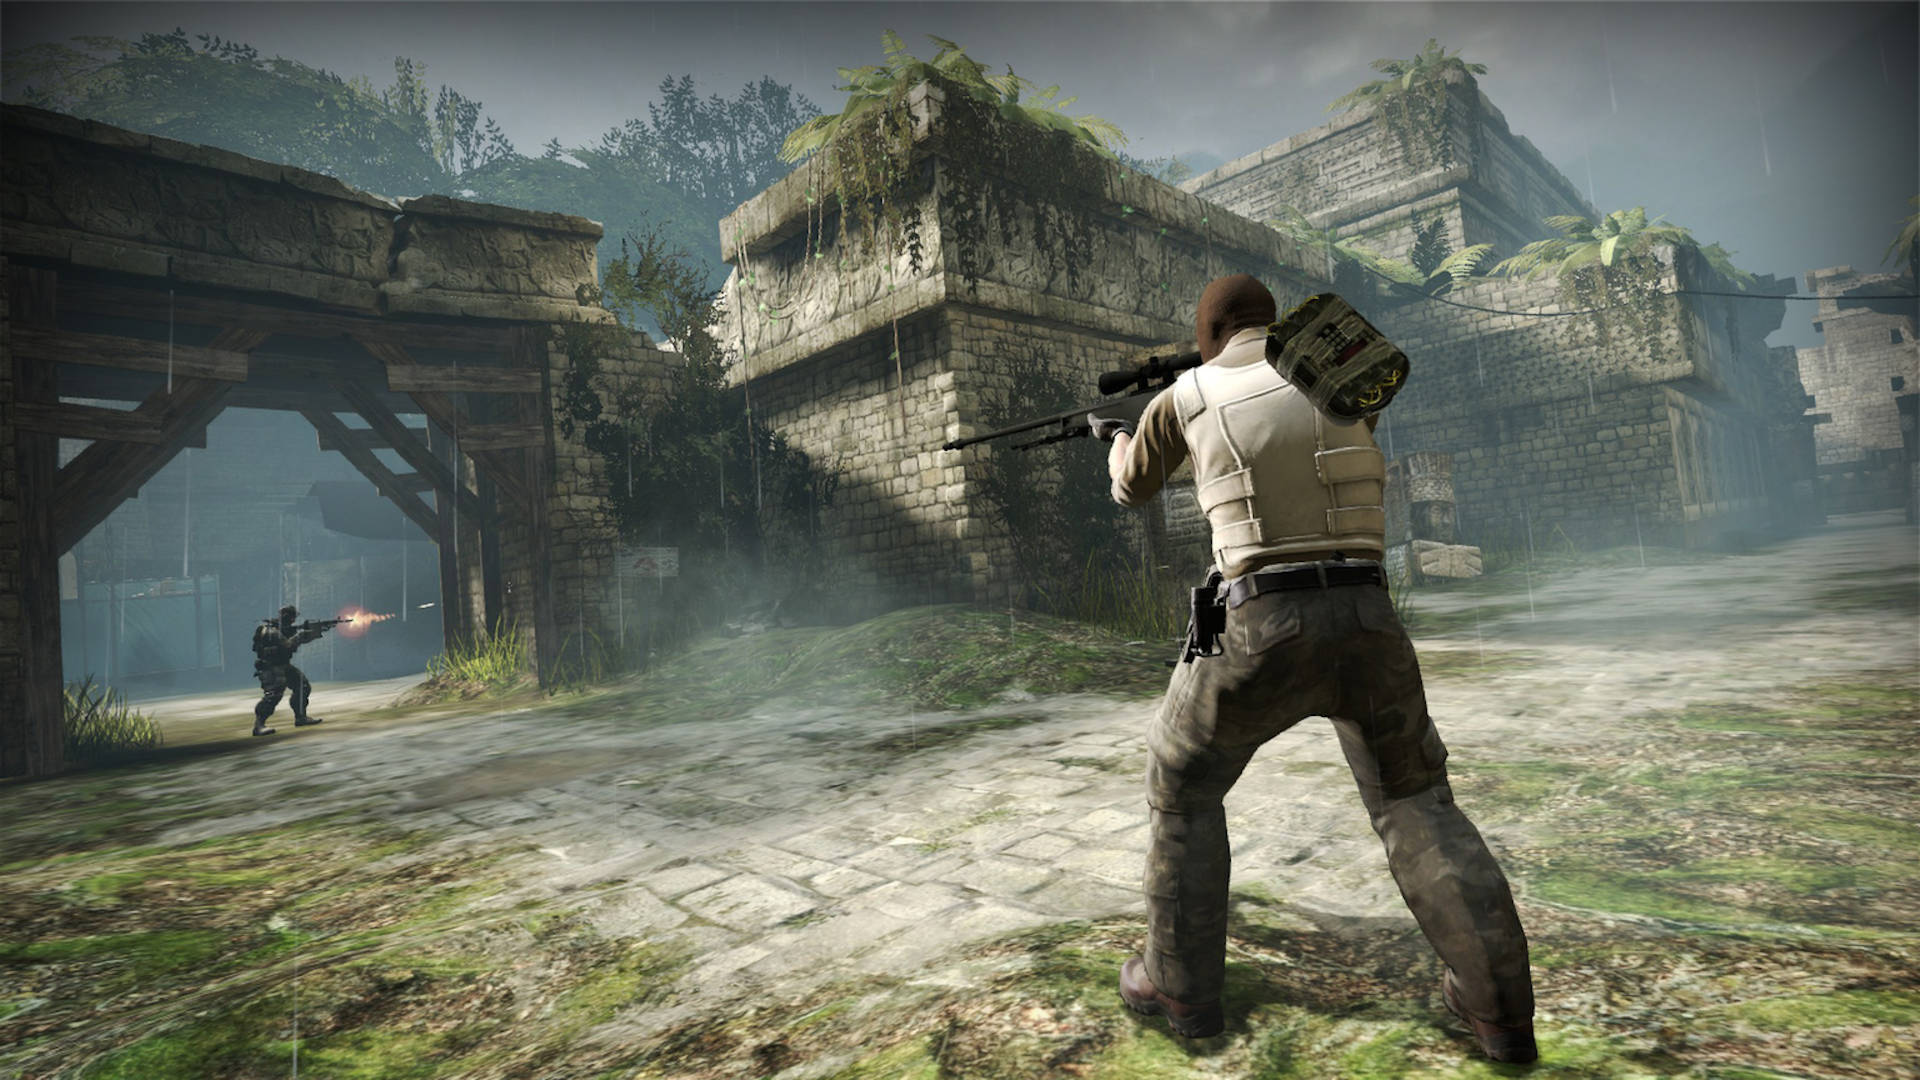 CS:GO cheats: What cheats are available, what can they do, and more - Download CS:GO cheats: What cheats are available, what can they do, and more for FREE - Free Cheats for Games